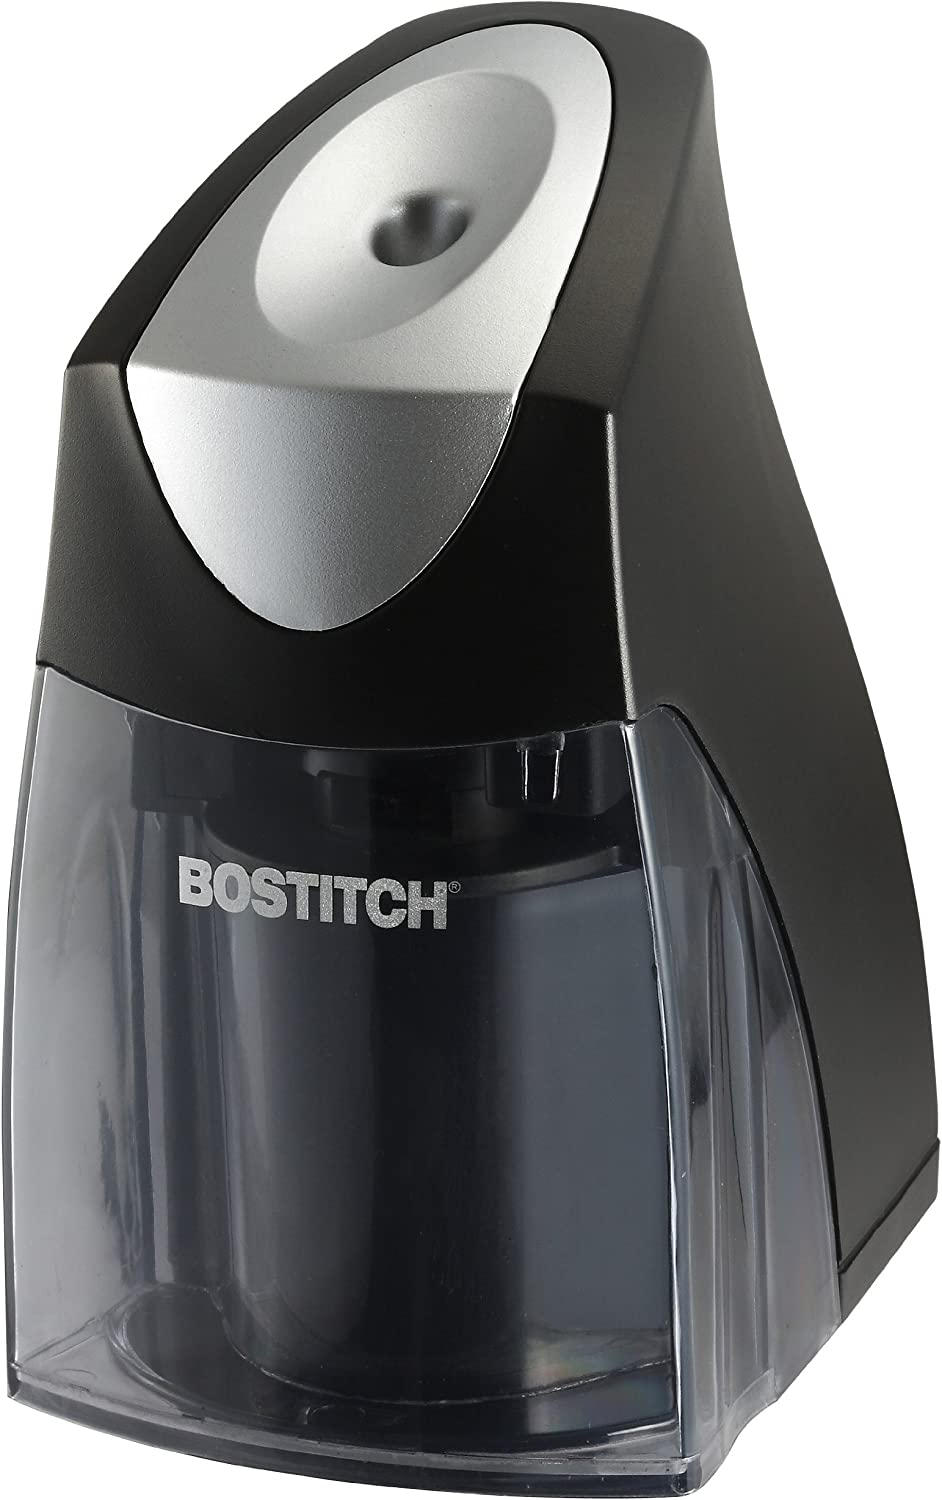 Bostitch QuietSharp Vertical Executive Electric Pencil Sharpener, Black (EPS9V-BLK)